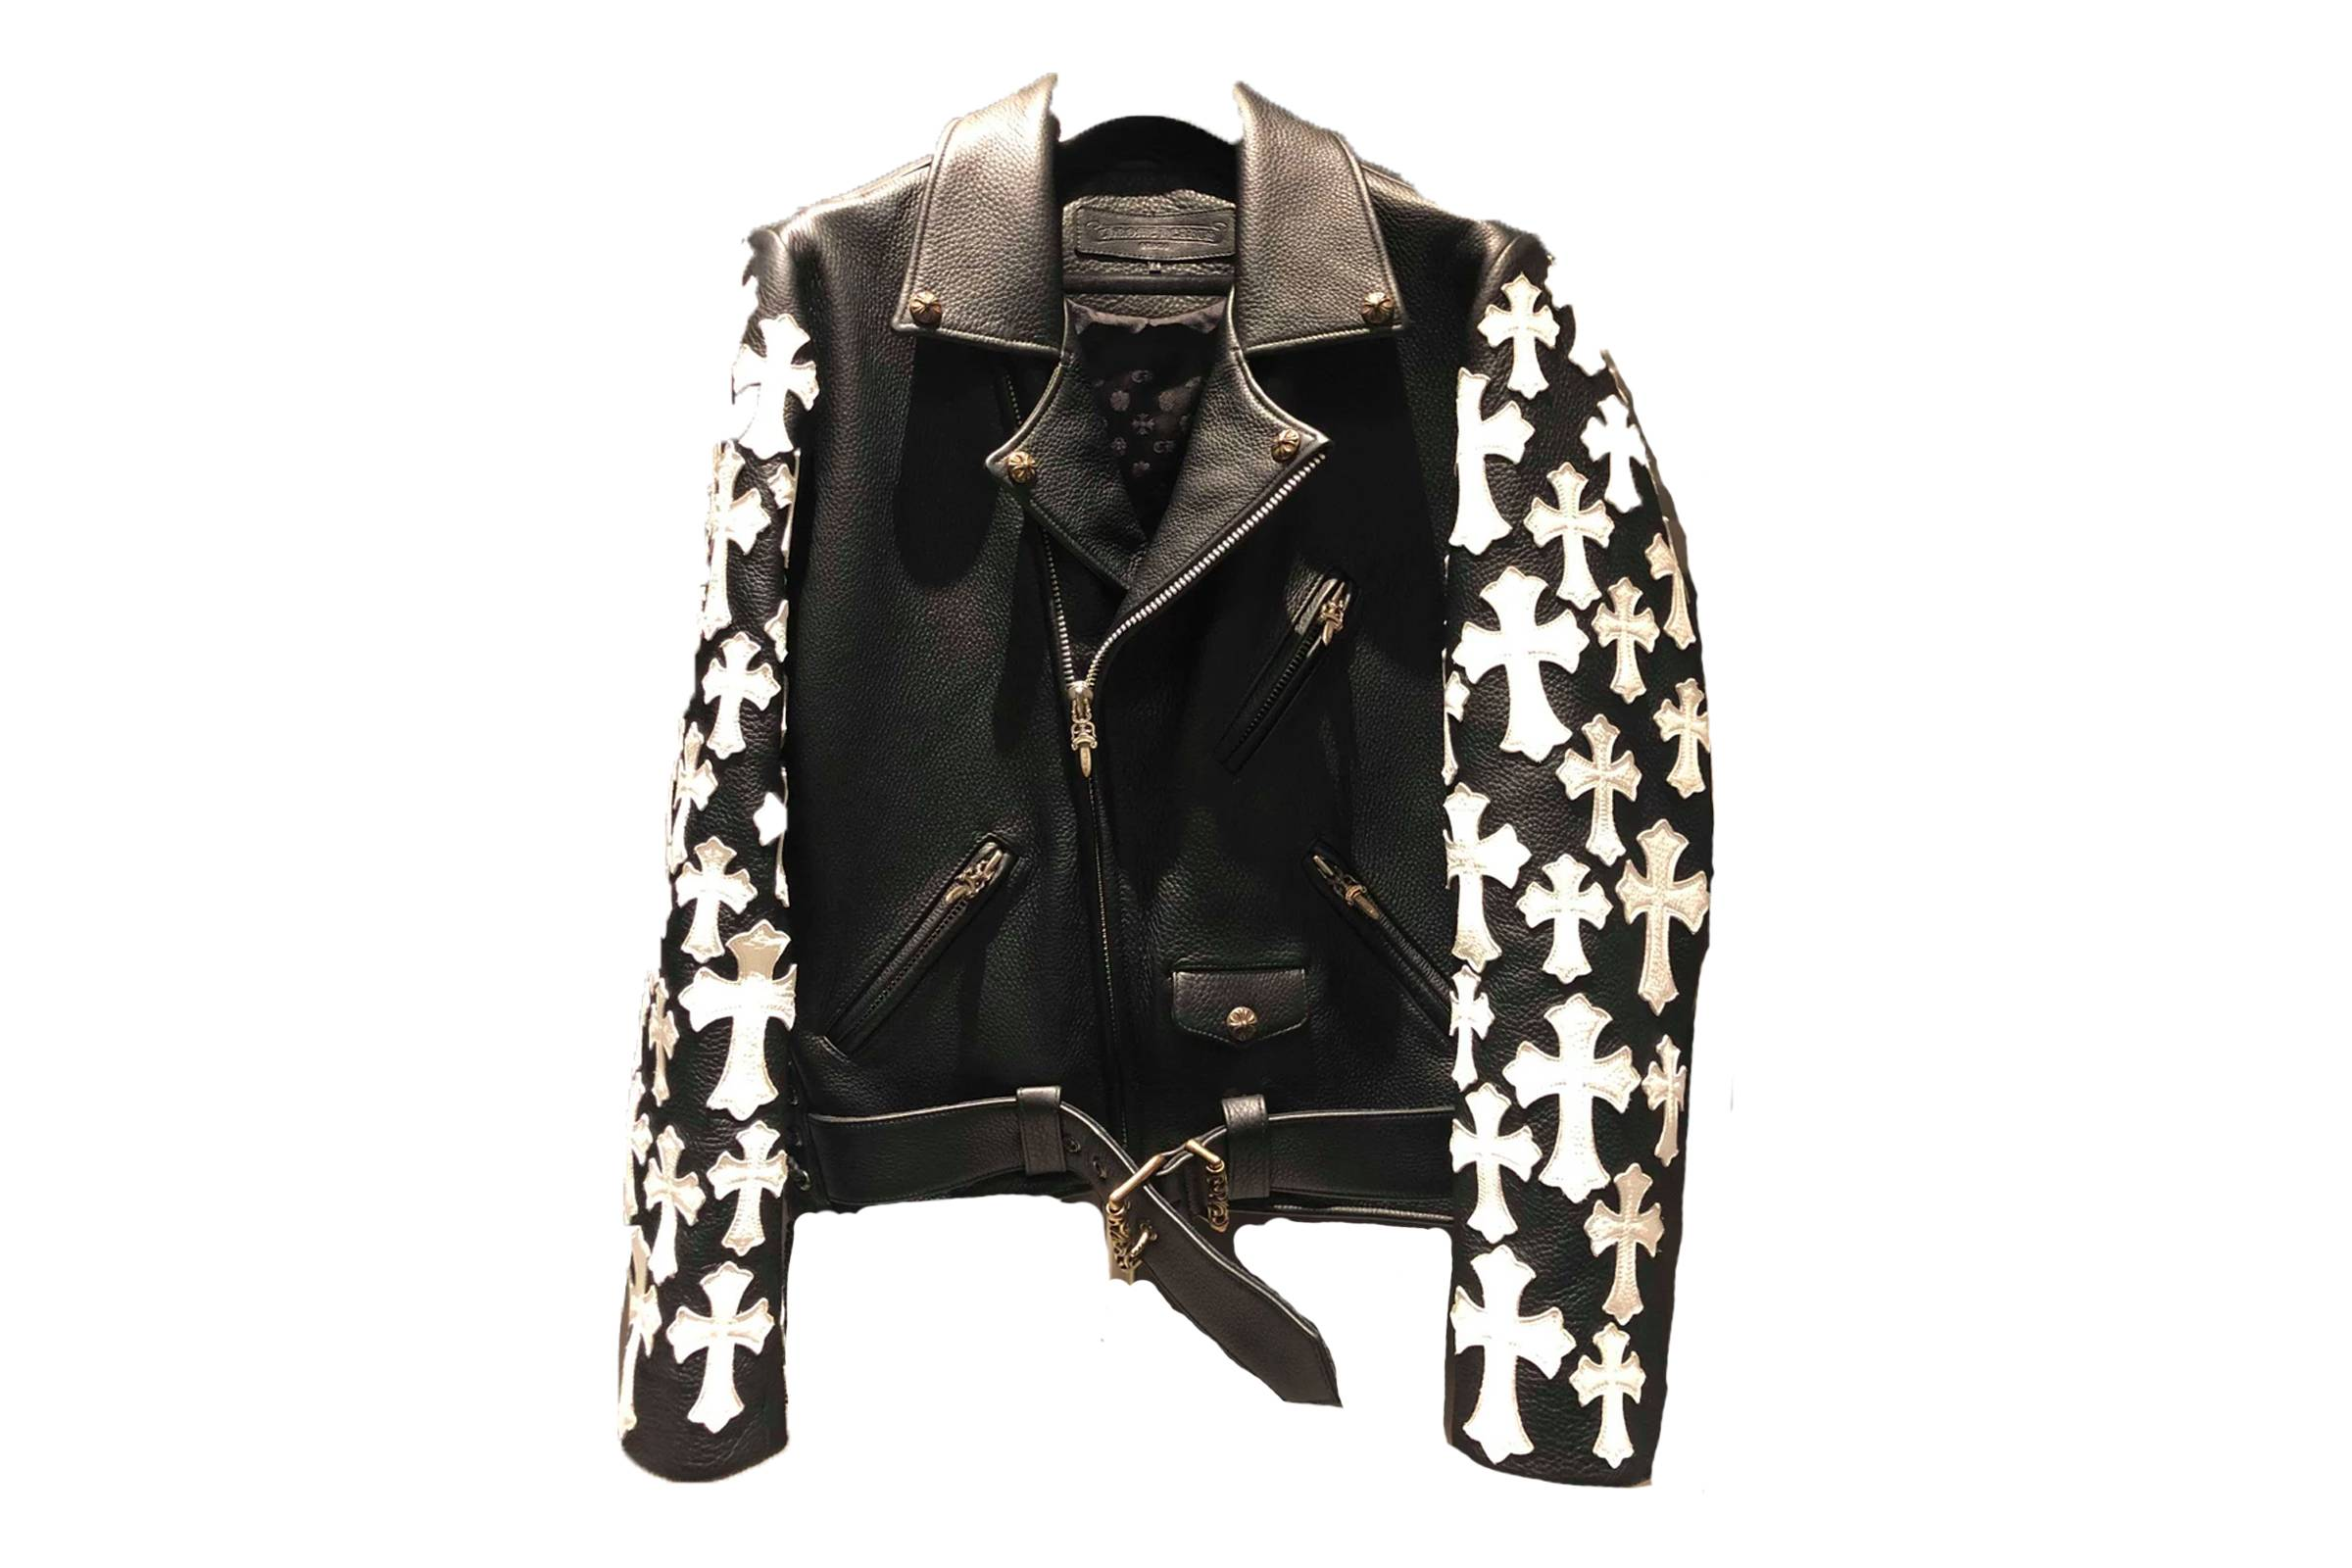 Chrome Hearts Special Order Leather Jacket (NY Exclusive)